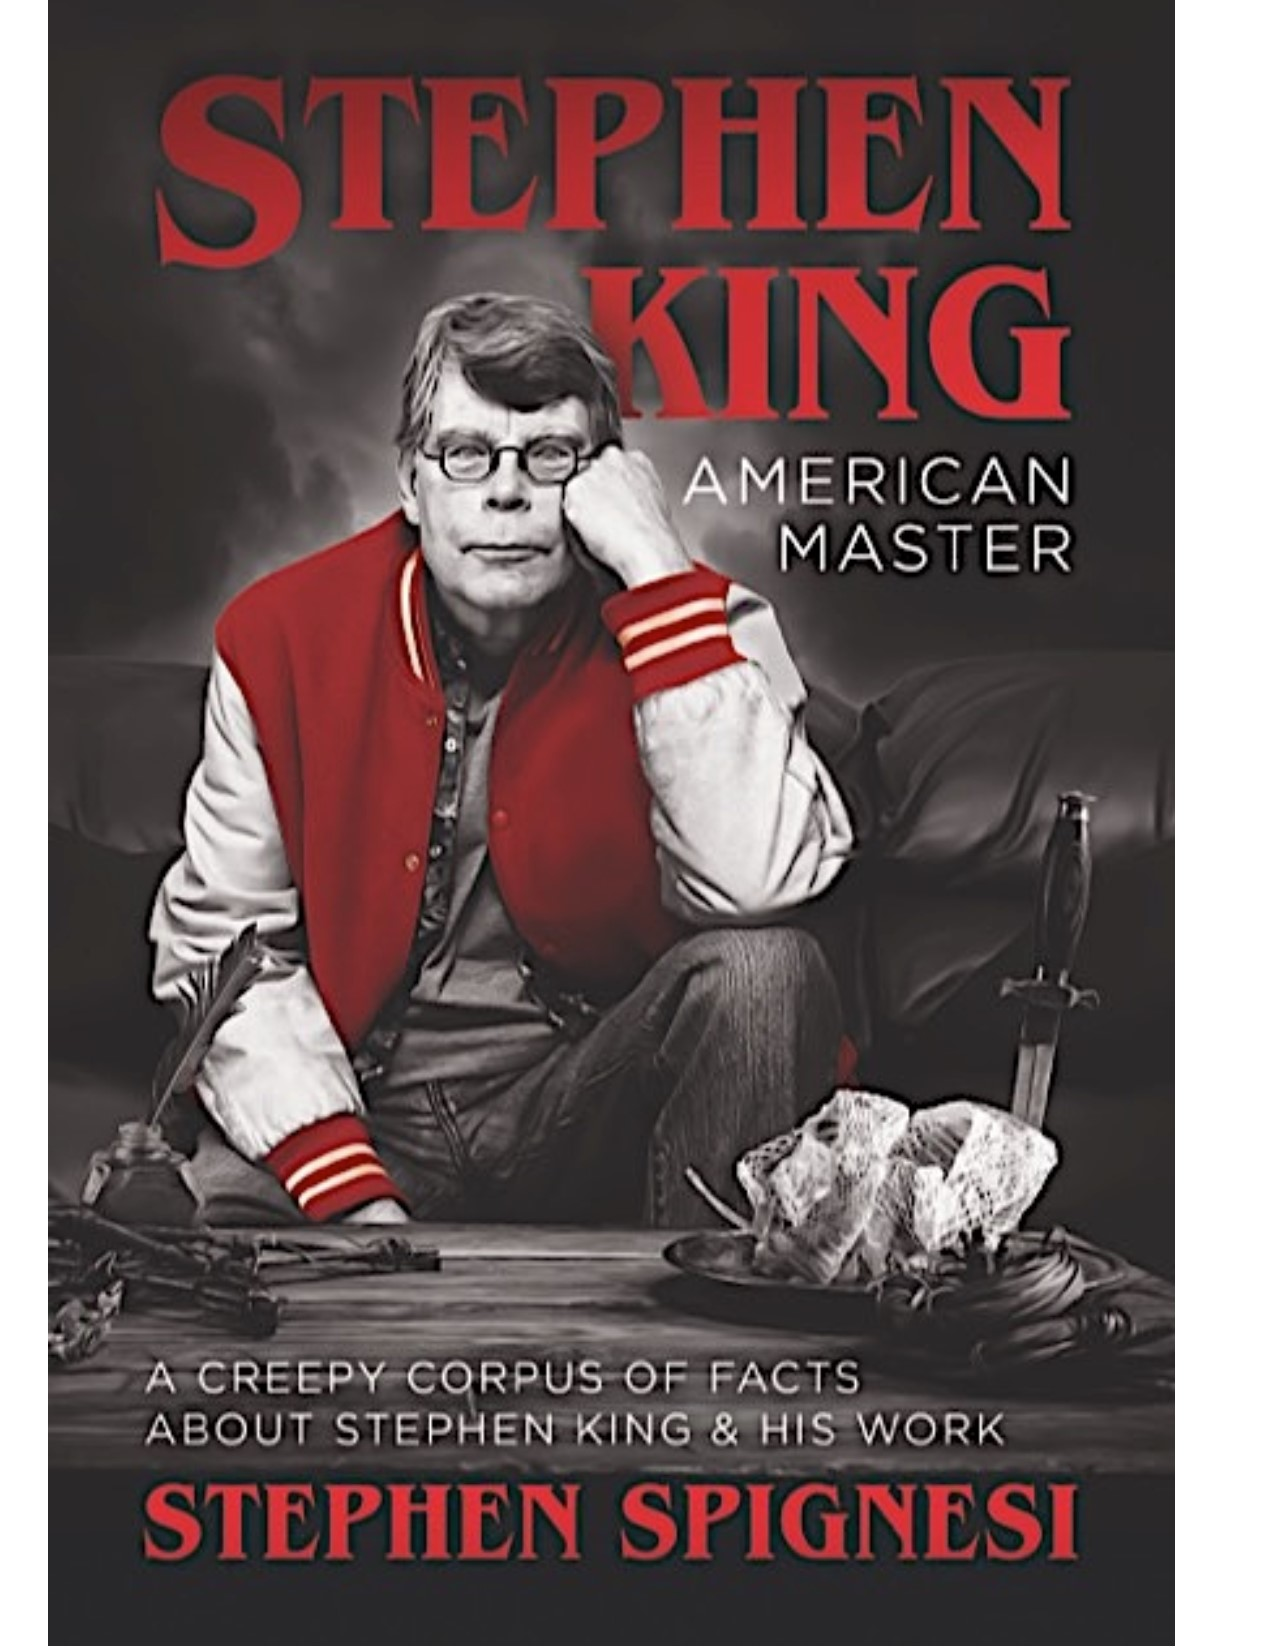 Author Talk: Stephen King American Master